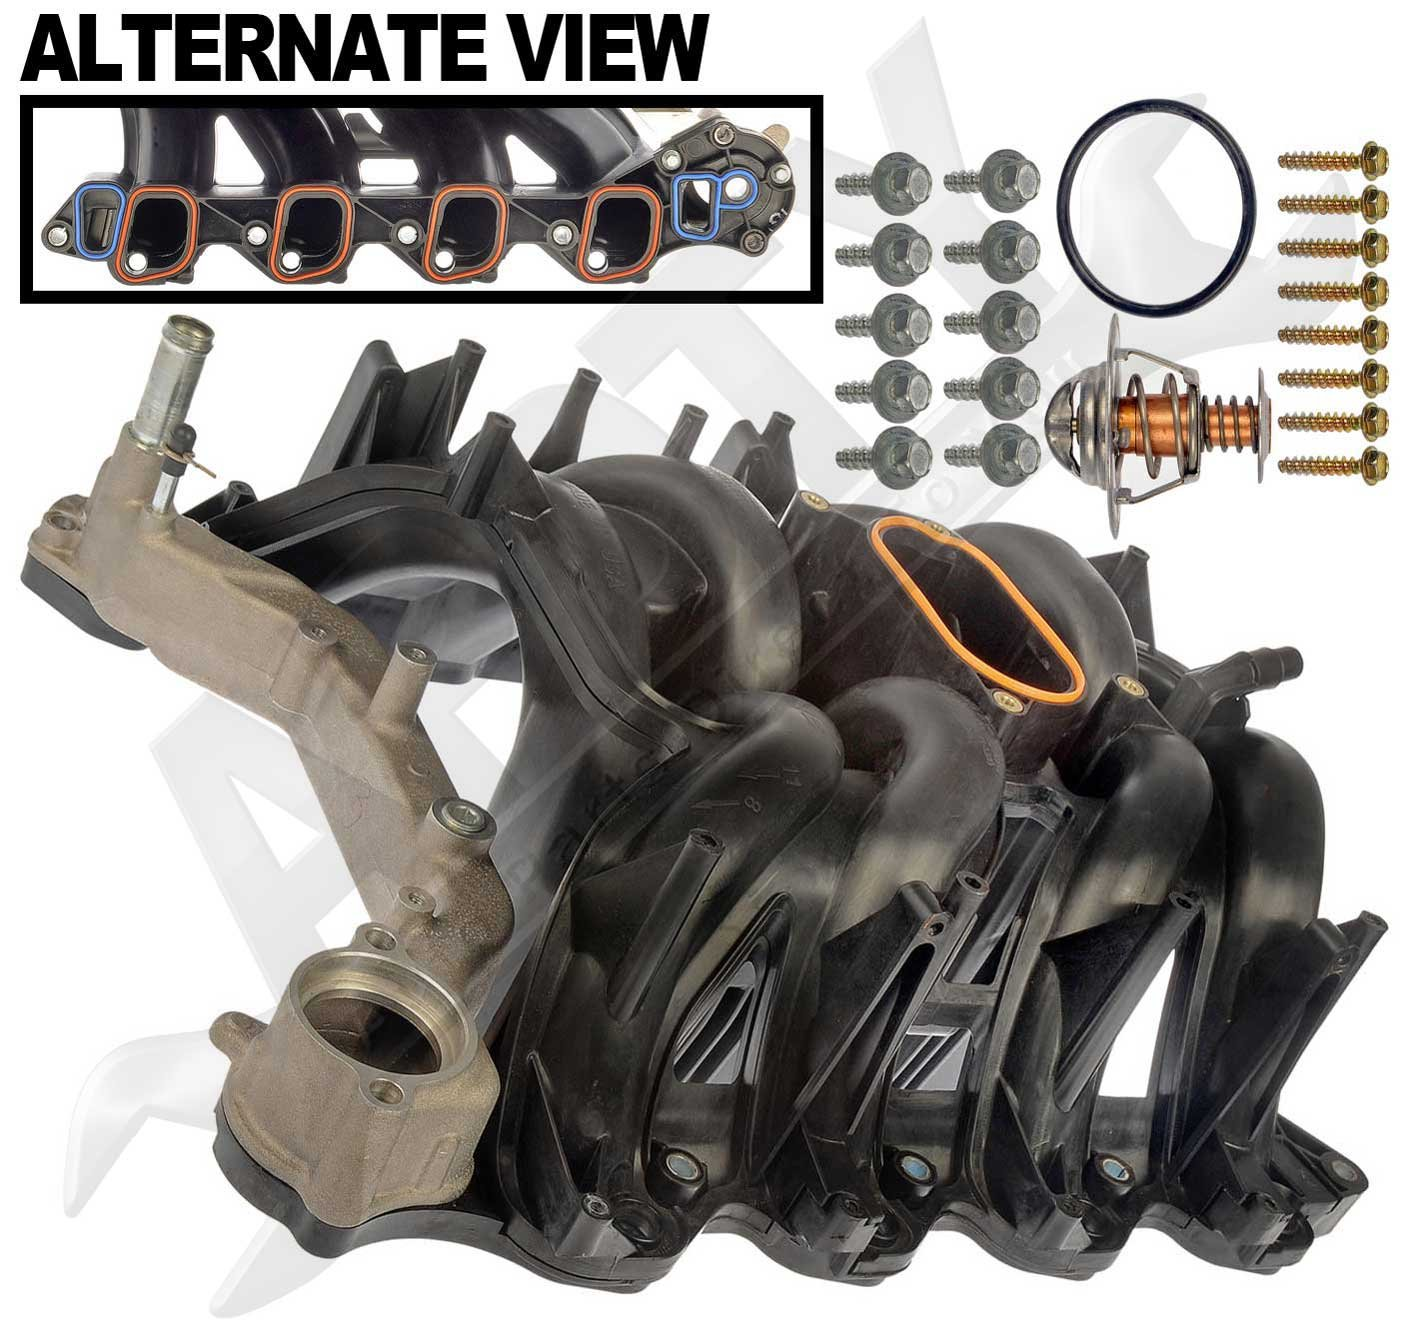 APDTY 726299 Intake Manifold Assembly w/ Upgraded Aluminum Front Coolant Passage O-Ring Gaskets & Thermostat Fits 2000-2015 Ford Trucks & Vans w/ 5.4L Engine (4C2Z-9424-CA, 2L1Z-9424-AA, 5C2Z9424AA)